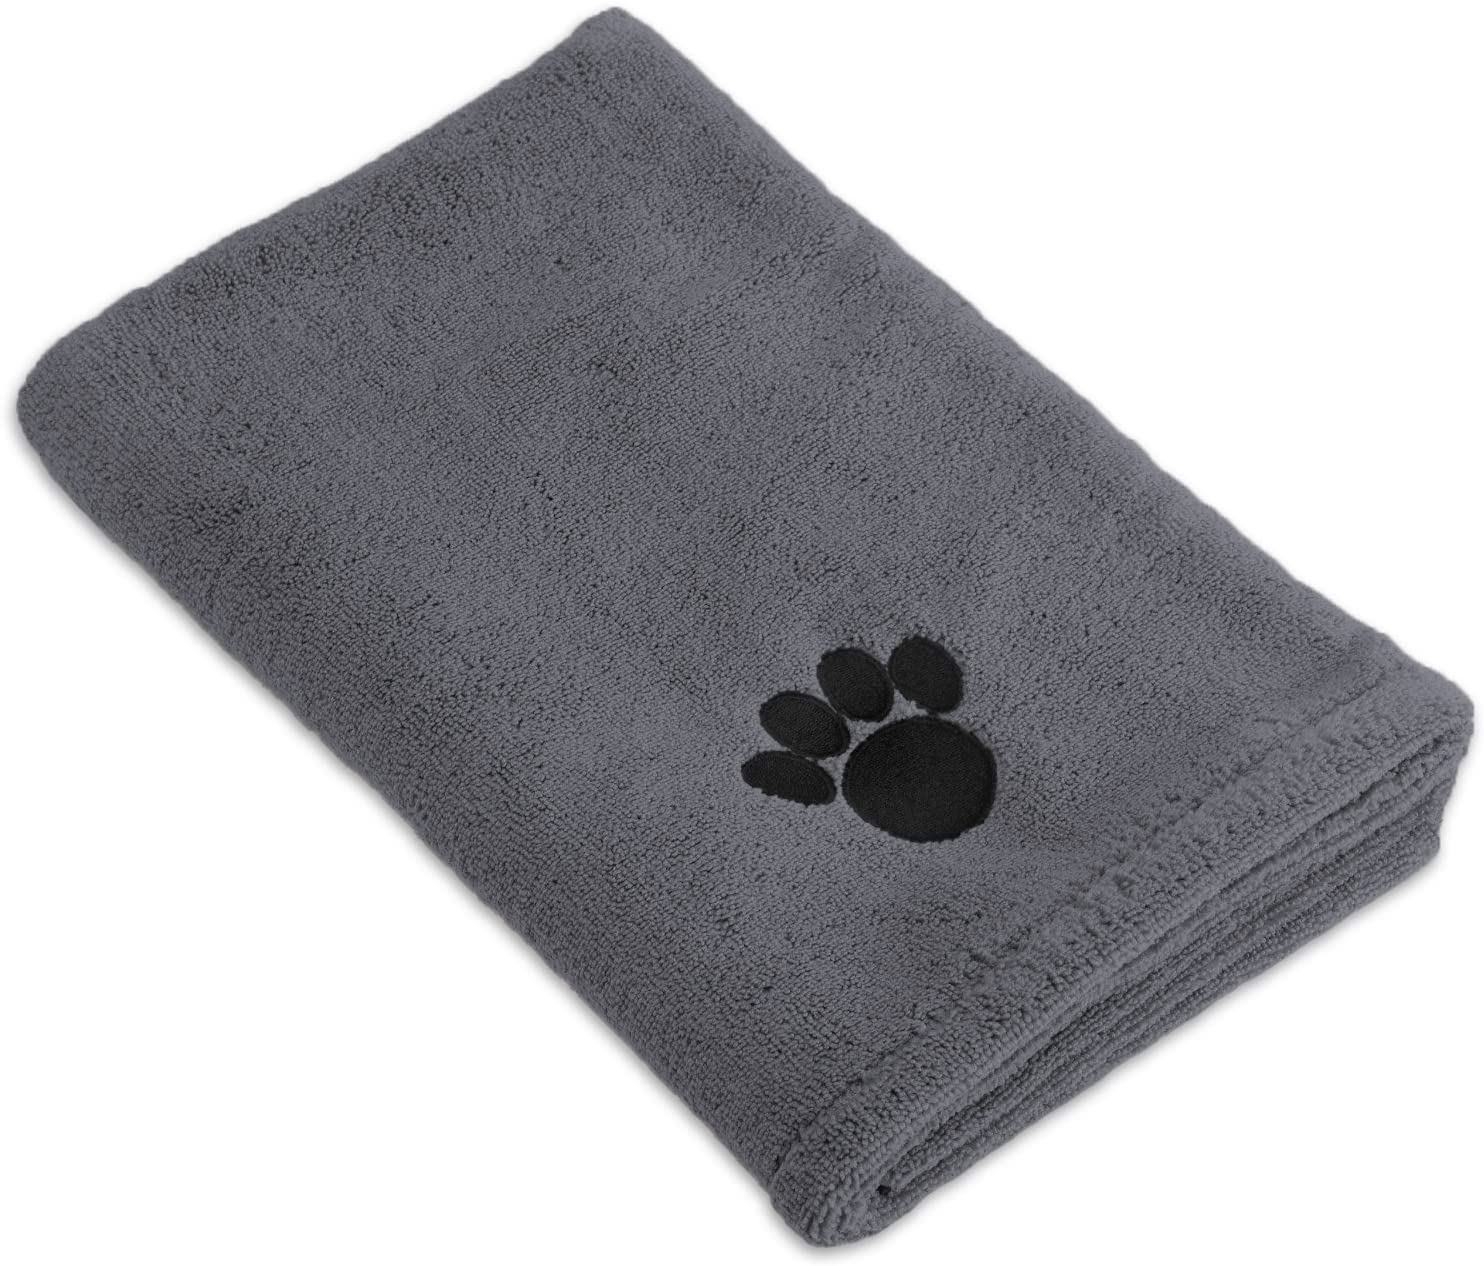 Bone Dry DII Microfiber Dog Bath Towel with Embroidered Paw